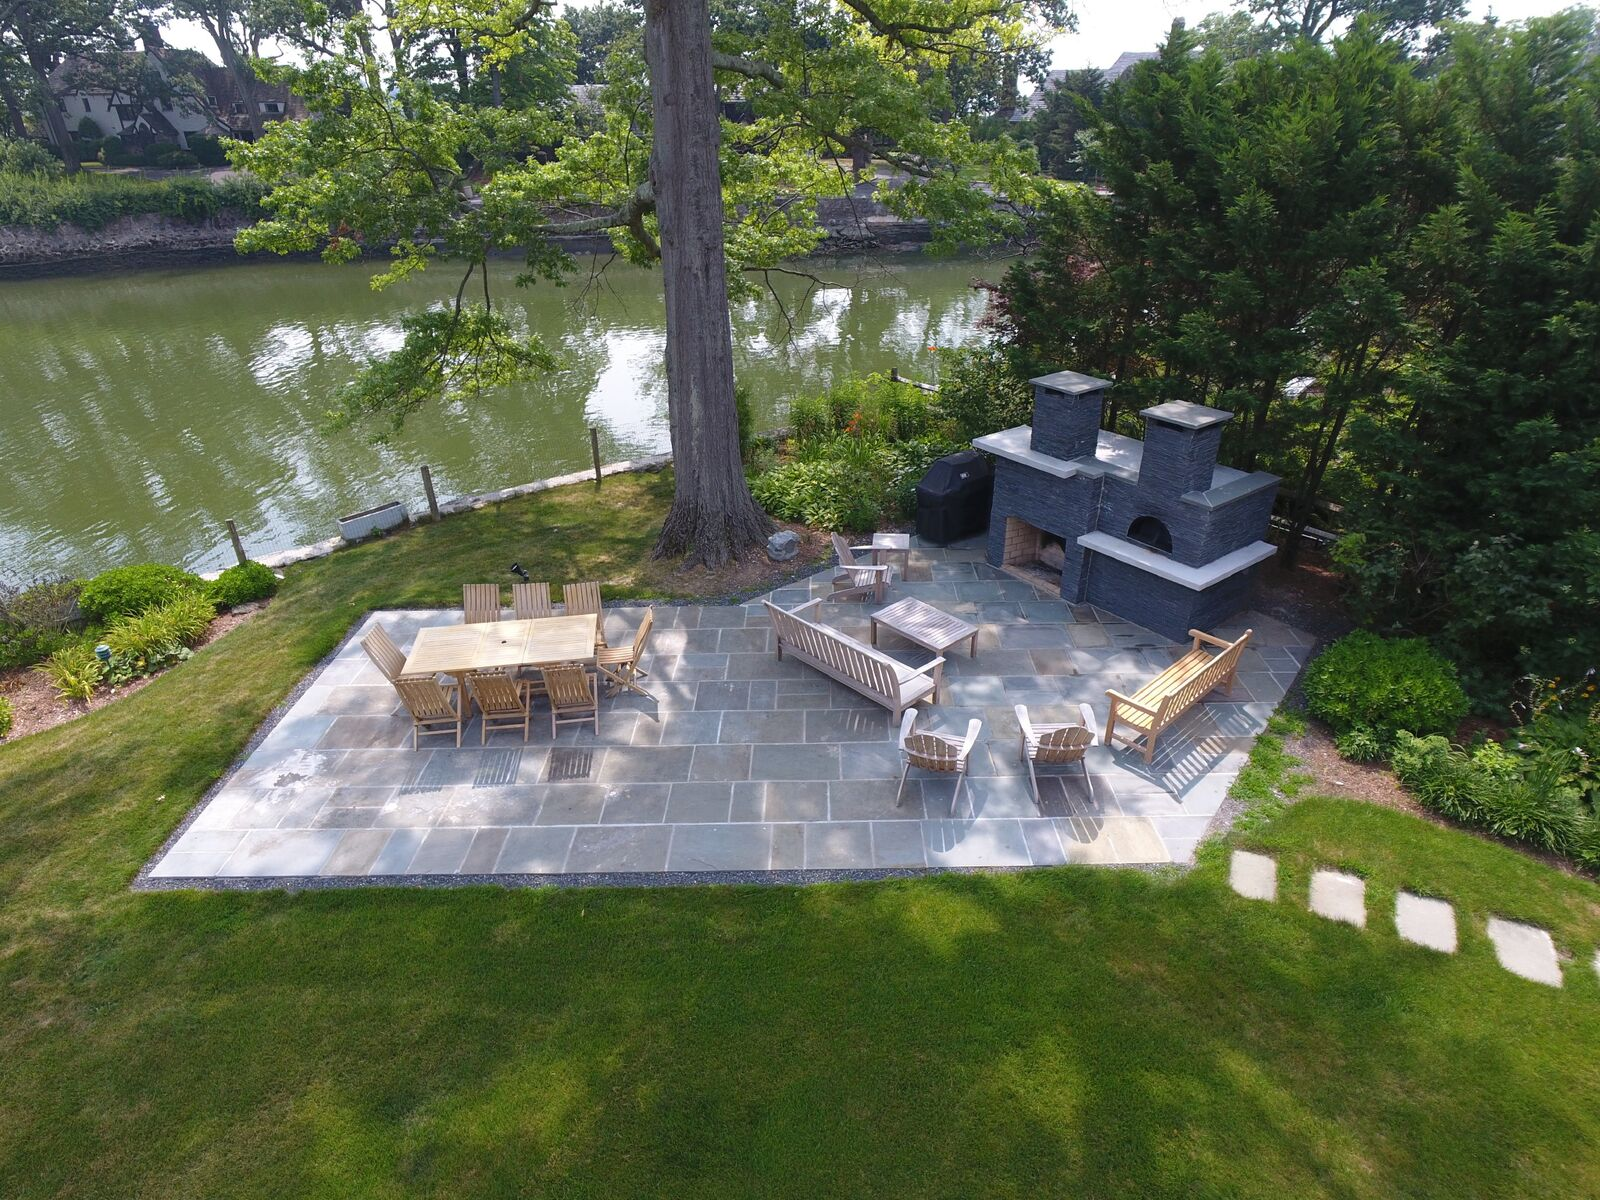 Bishop - Patio, Sitting Wall, Pavers & Pizza Oven development